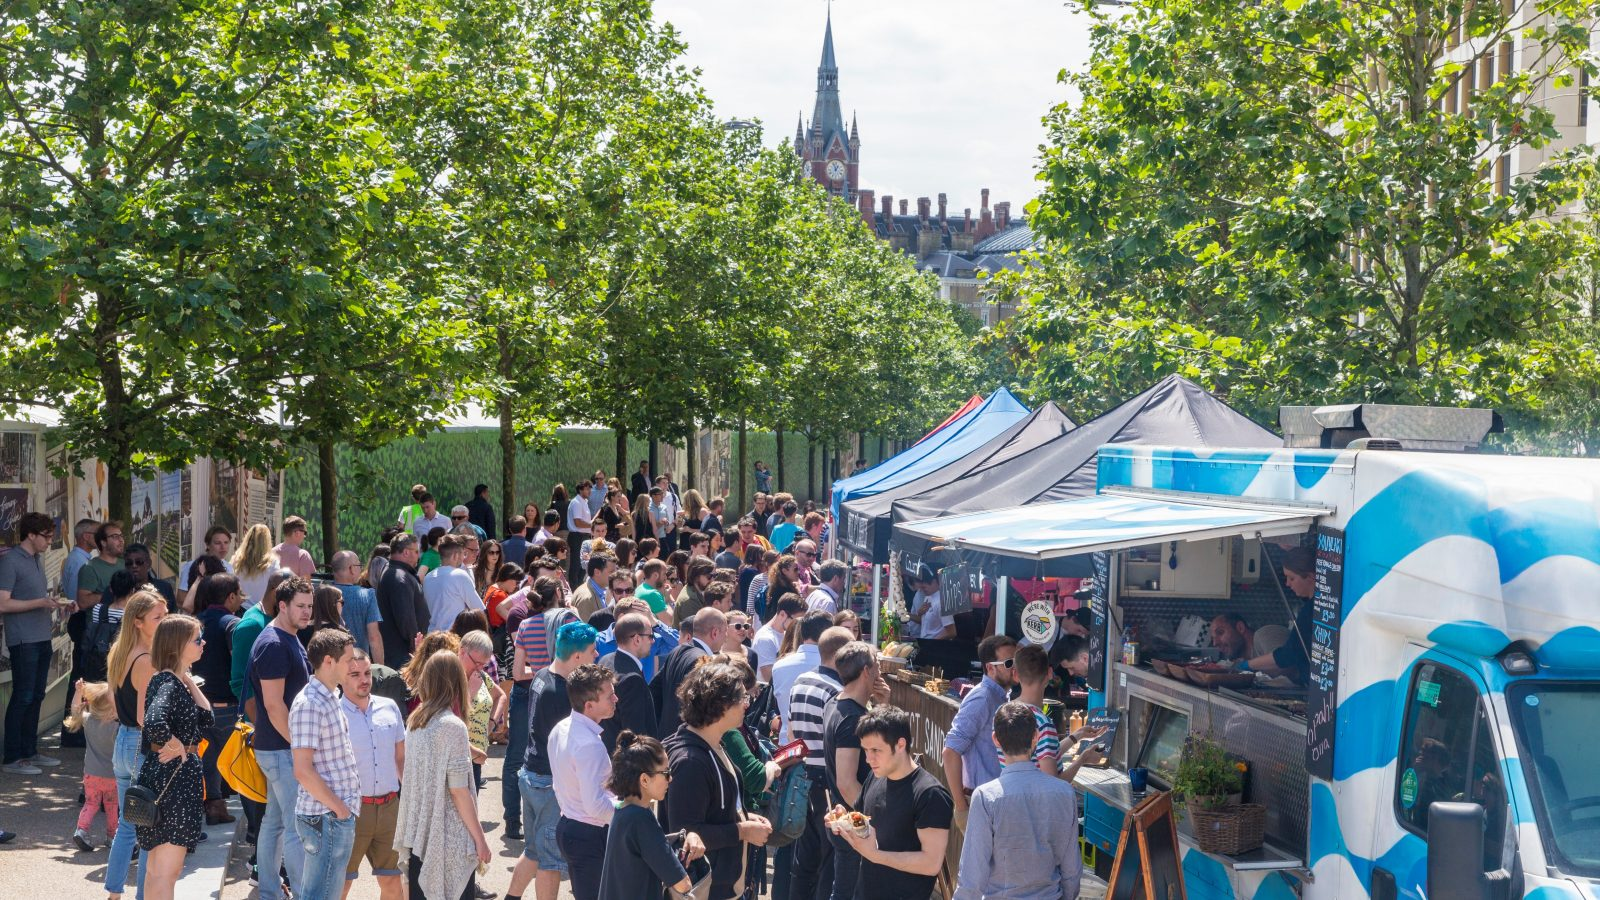 KERB Street food and St Pancras